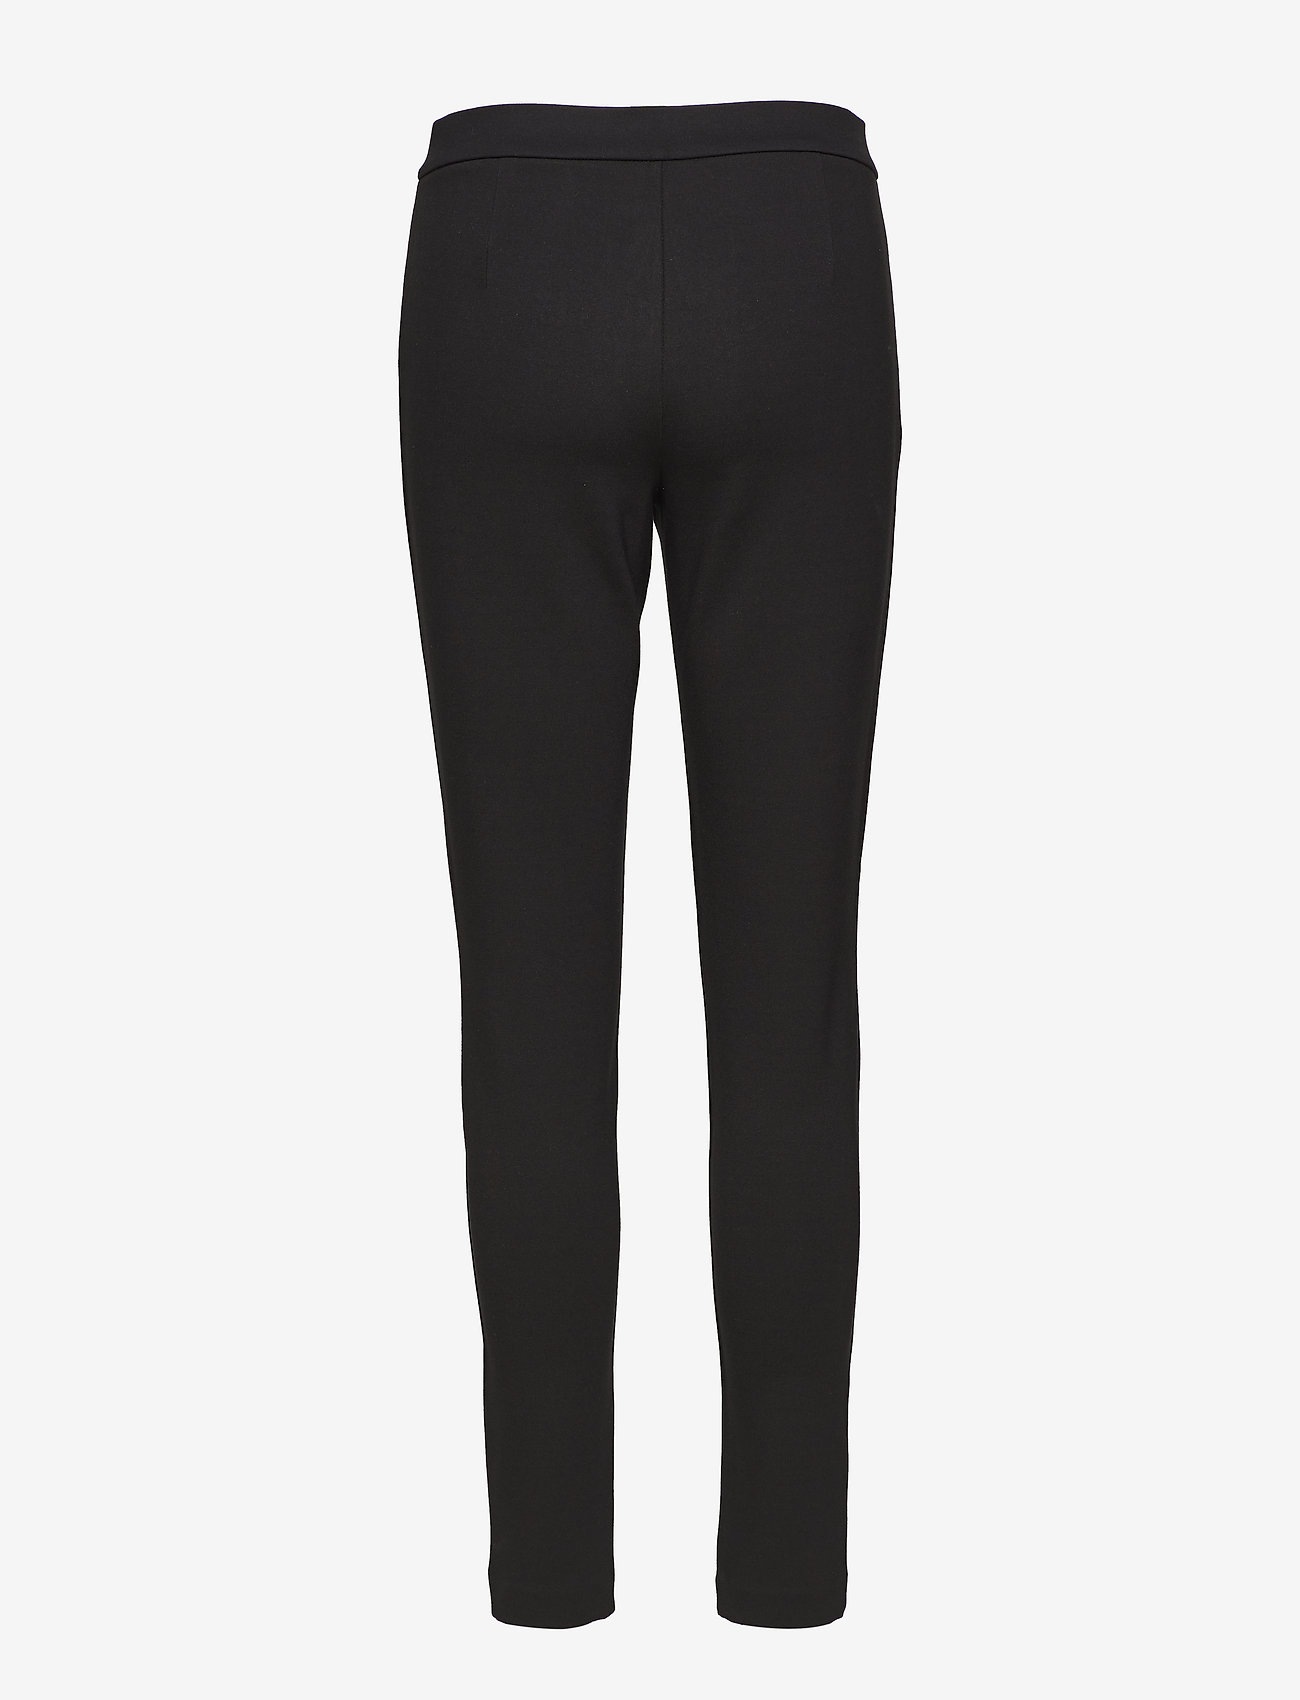 Pants Casual 1/1 Length (Black) - Betty Barclay 59UYmq